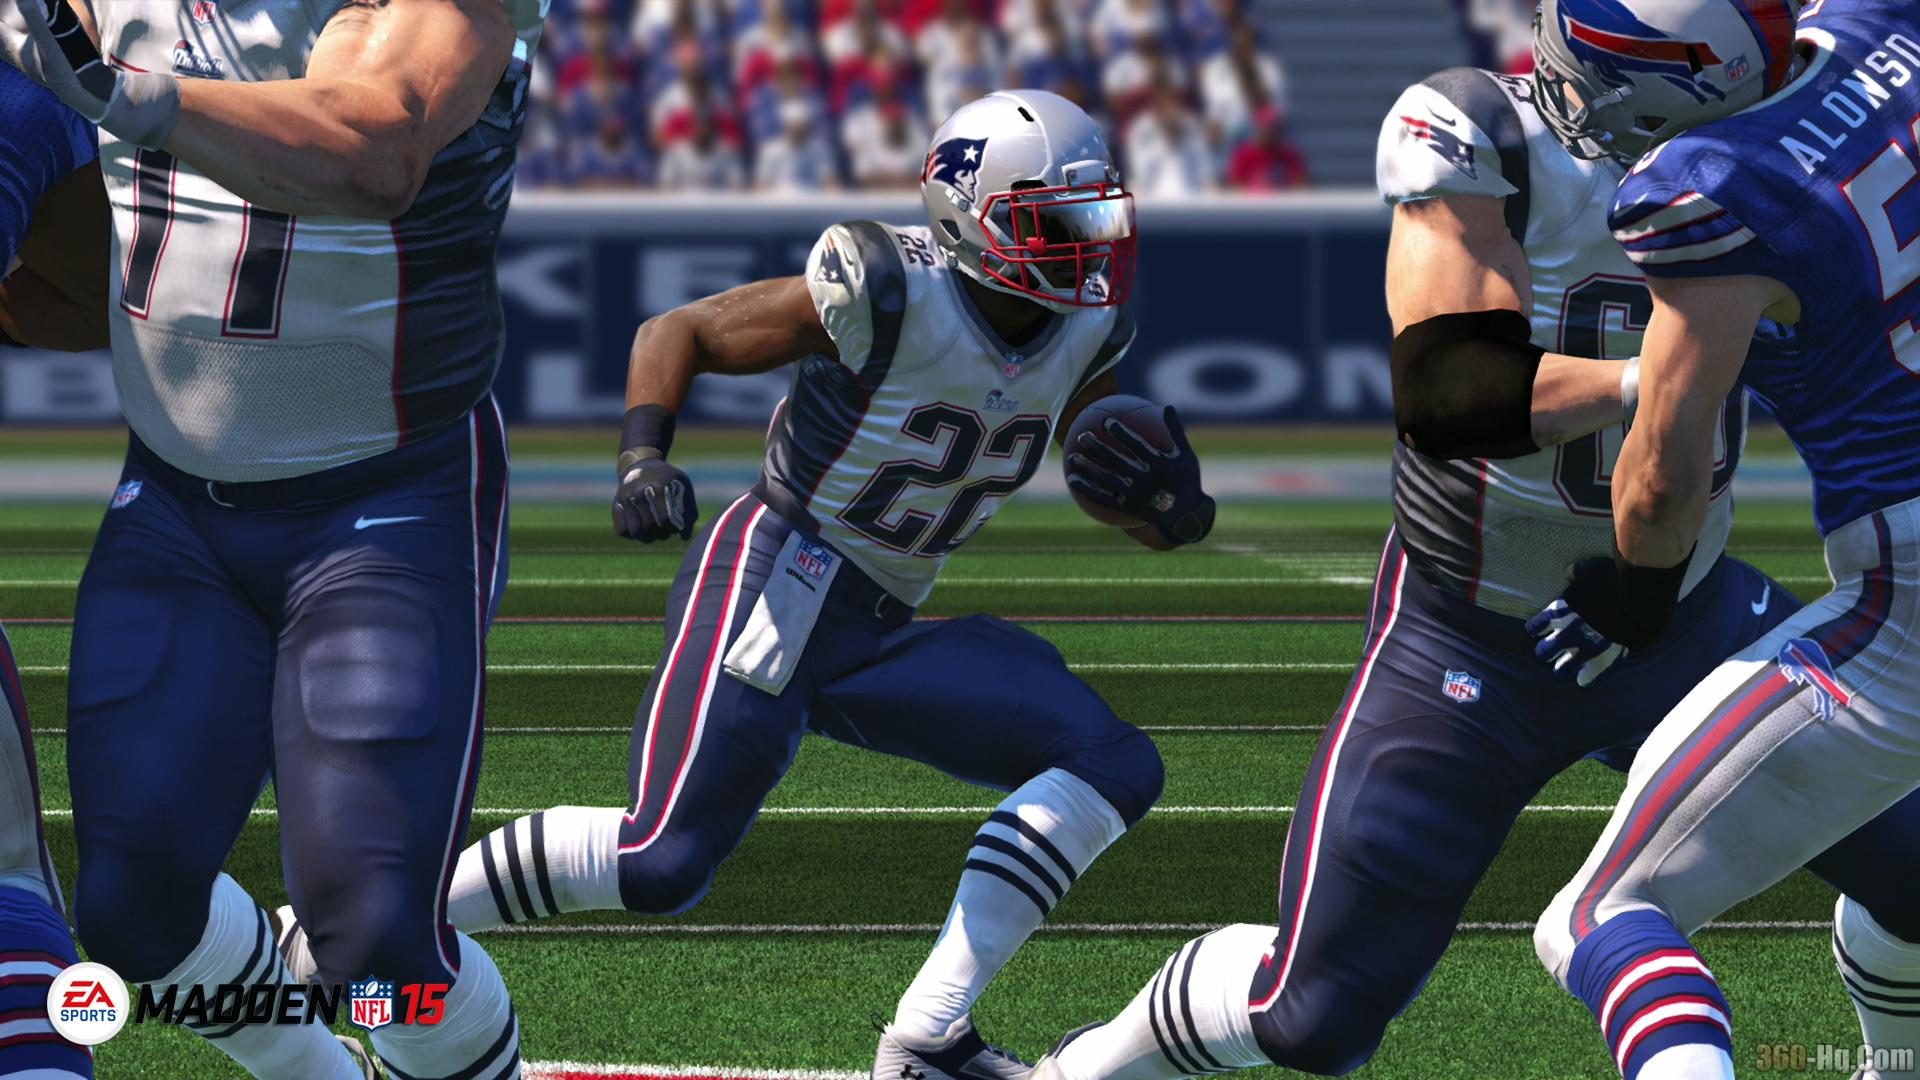 Madden NFL 15 Screenshot 30155